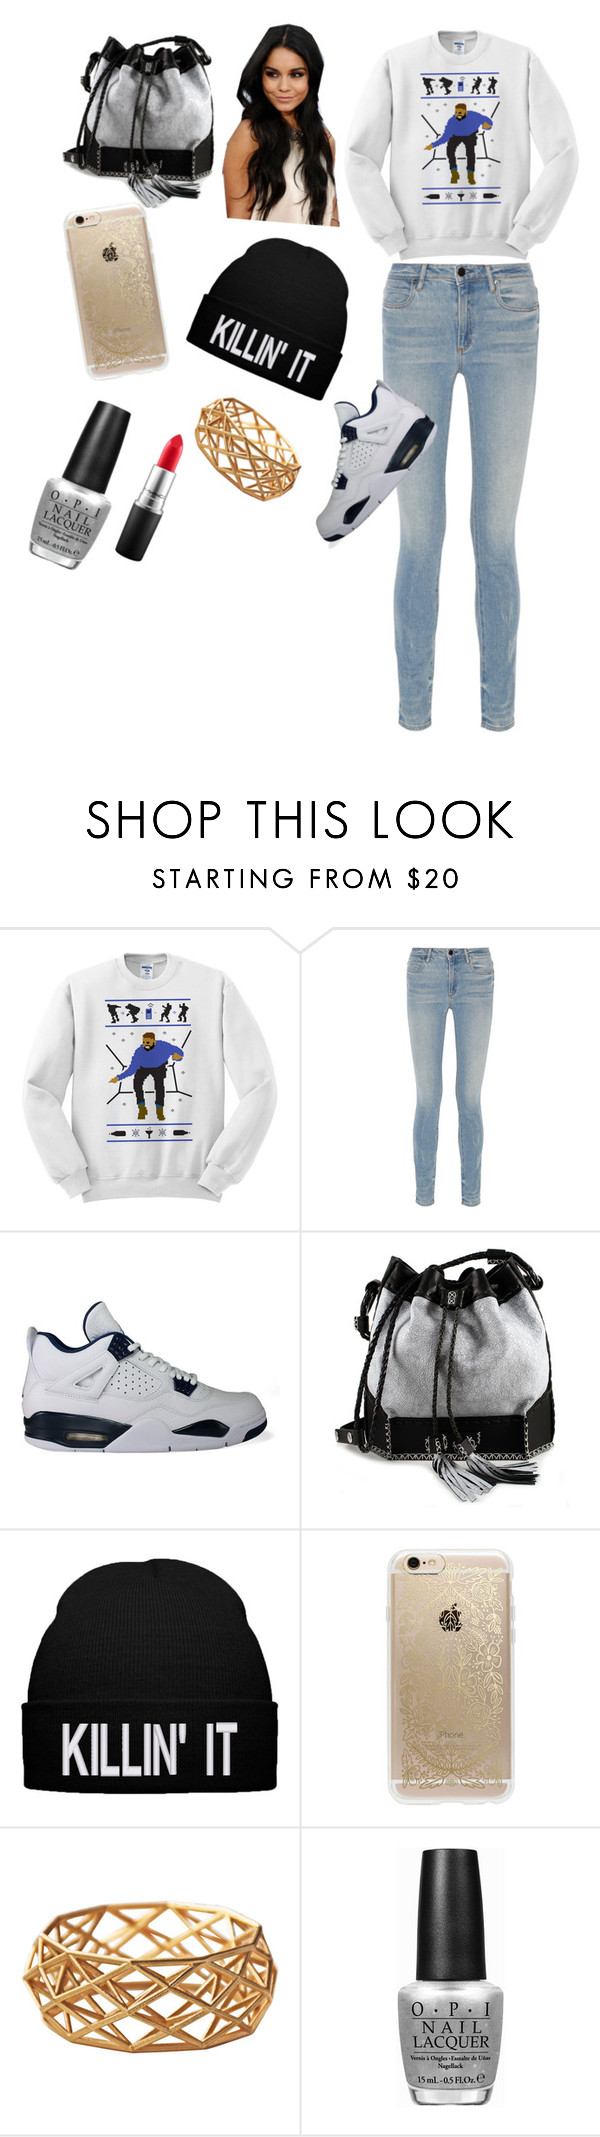 """""""Untitled #86"""" by christianabossbitch47 ❤ liked on Polyvore featuring Alexander Wang, NIKE, Carianne Moore, Rifle Paper Co, OPI and MAC Cosmetics"""